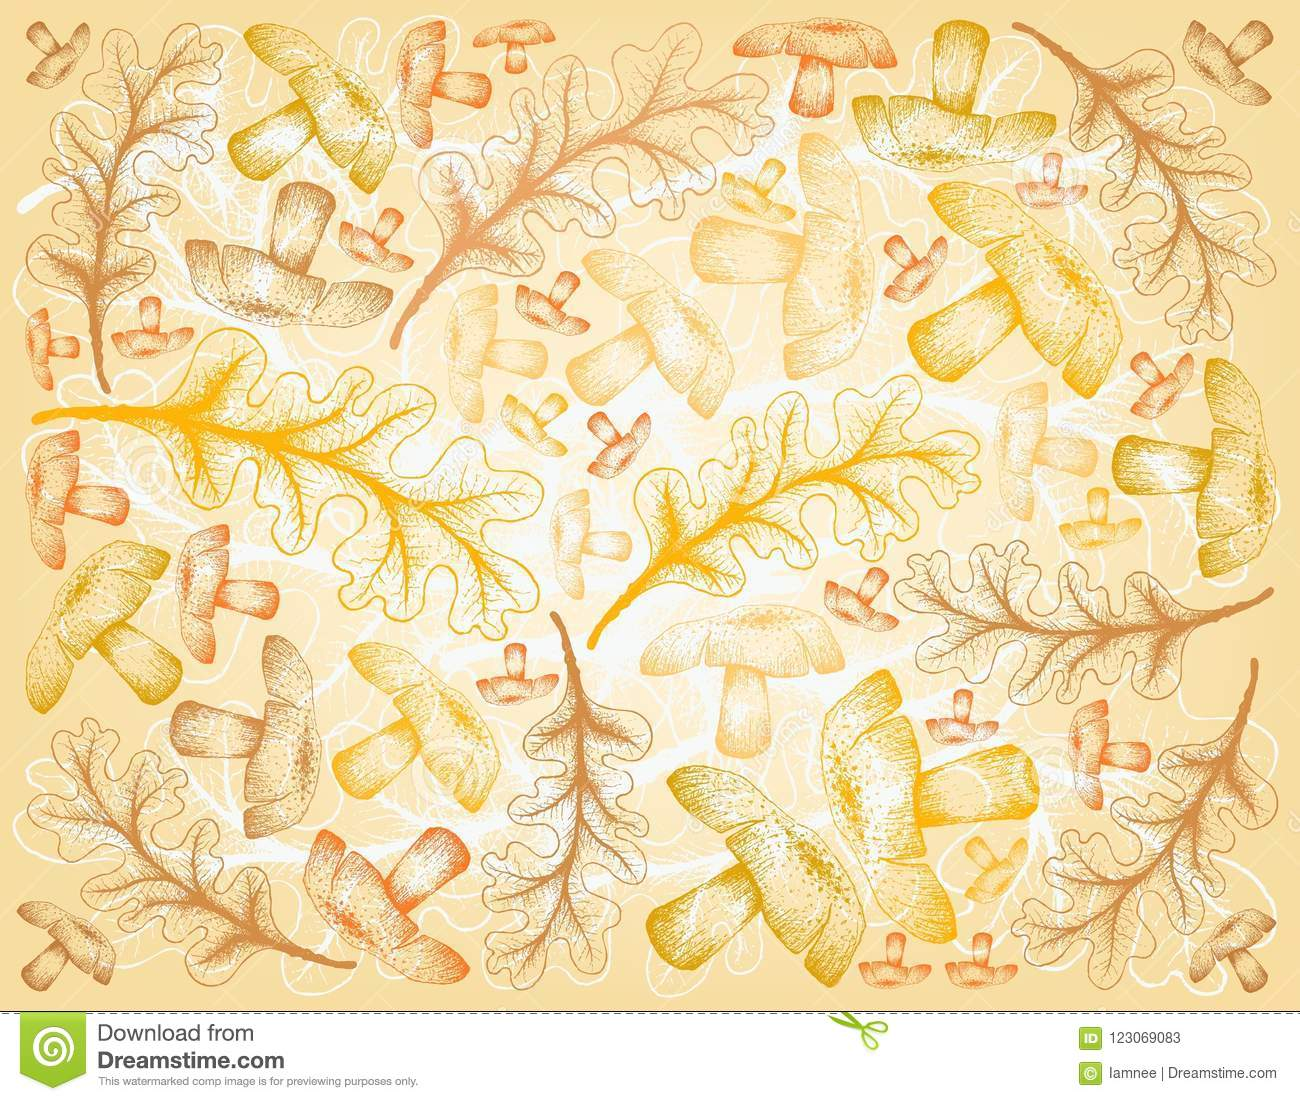 Hand Drawn Background Of Autumn Oak Leaves And Mushrooms Stock